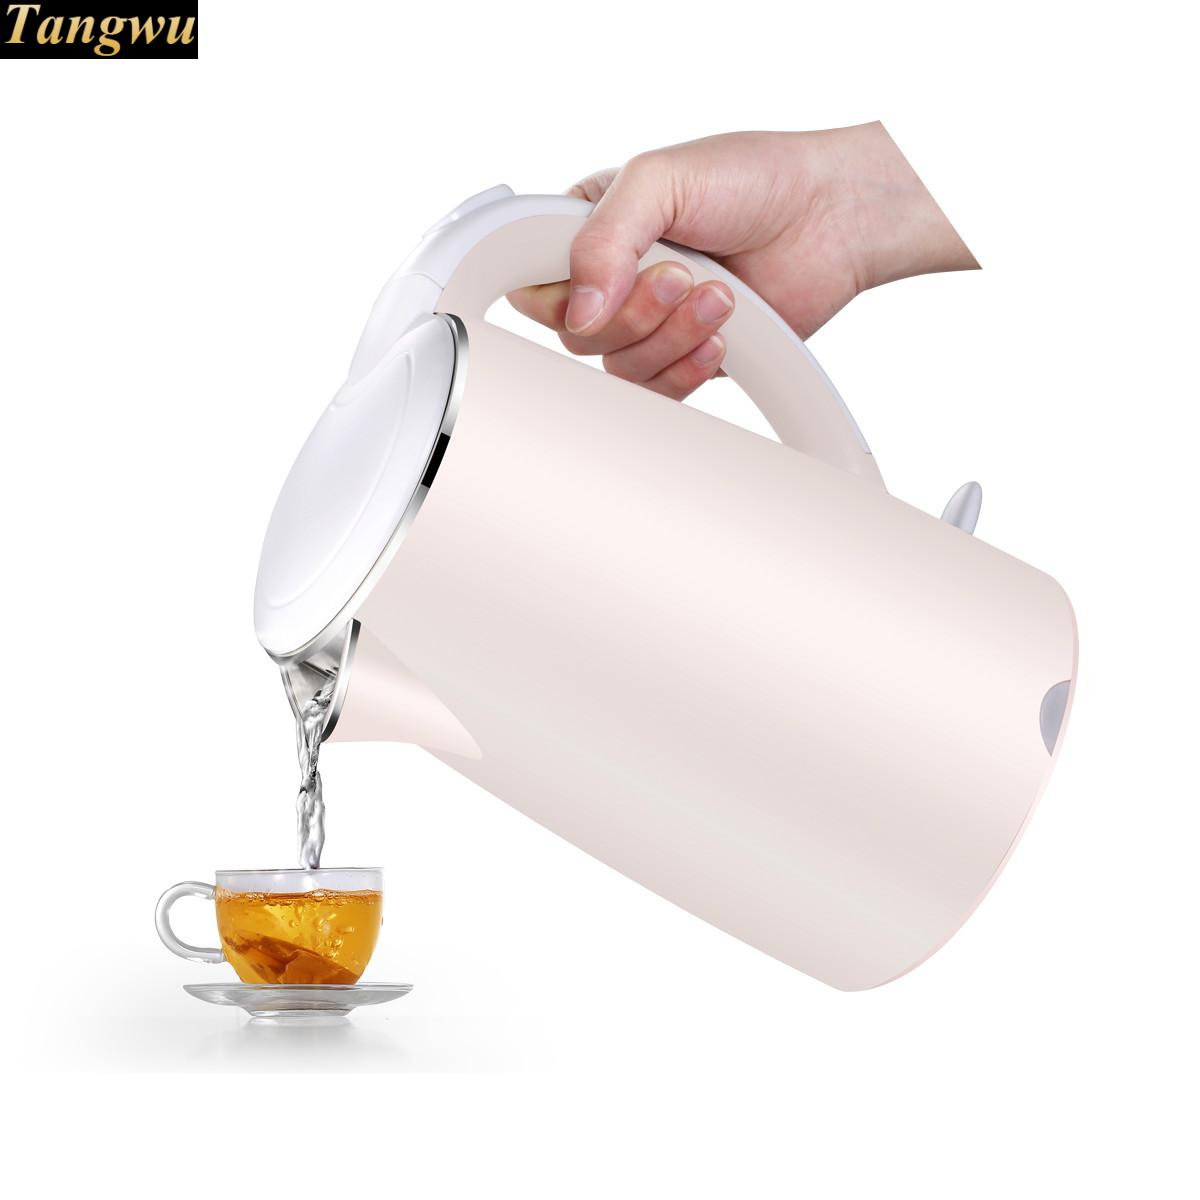 NEW High quality Electric heating kettle household 304 stainless steel fast automatic power - off brand new high quality bov turbo blow off valve for hks sqv4 ssqv4 better performance than sqv3 fast delivery